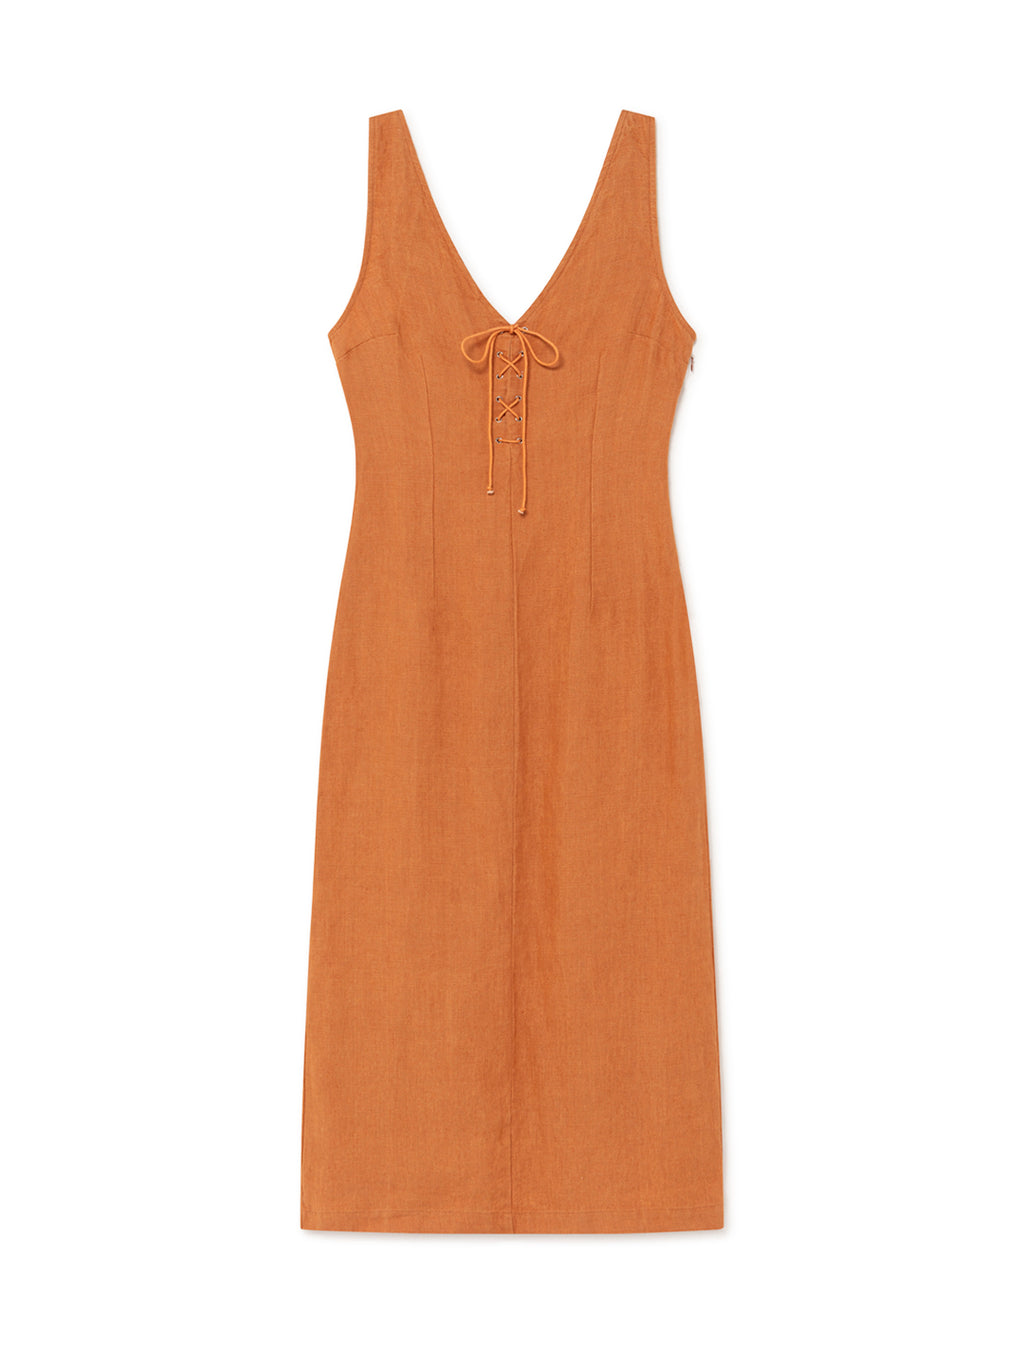 Emma Dress - Light Caoba